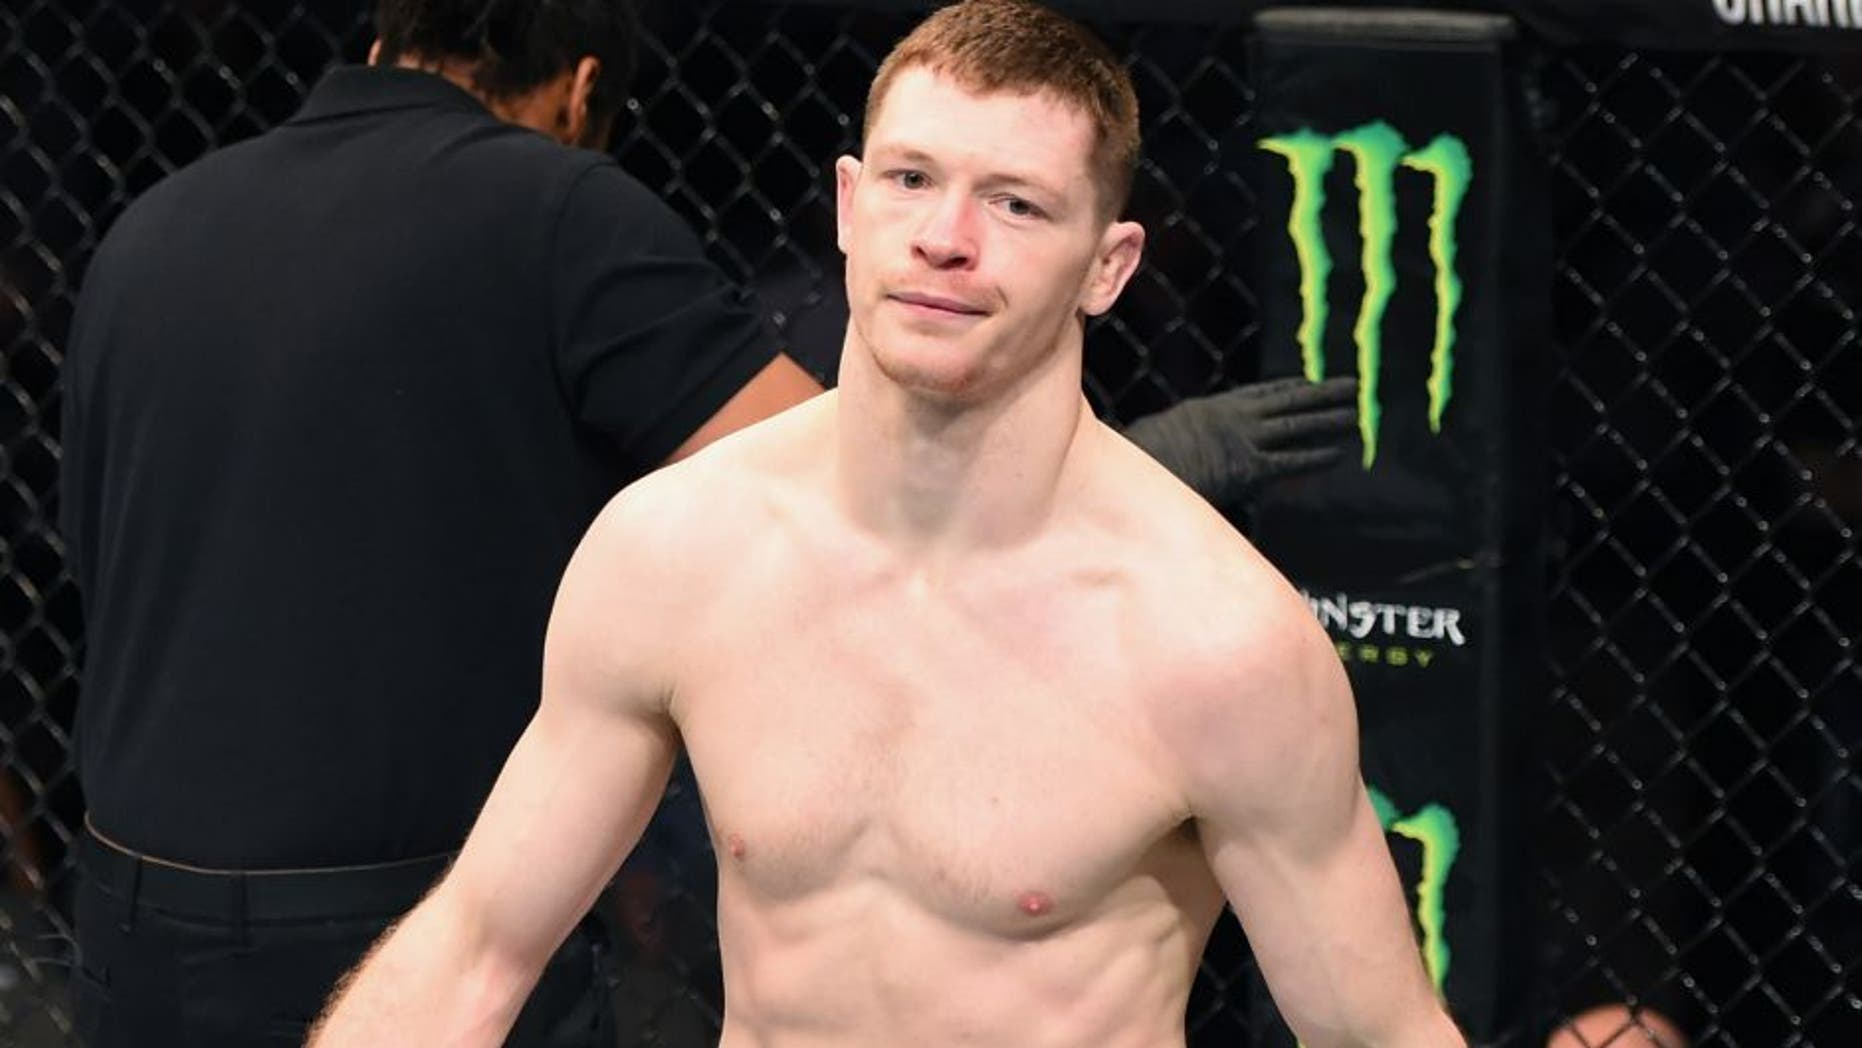 DALLAS, TX - MARCH 14: (L-R) Joseph Duffy walks back to this corner after defeating Jake Lindsey in their lightweight bout during the UFC 185 event at the American Airlines Center on March 14, 2015 in Dallas, Texas. (Photo by Josh Hedges/Zuffa LLC/Zuffa LLC via Getty Images)